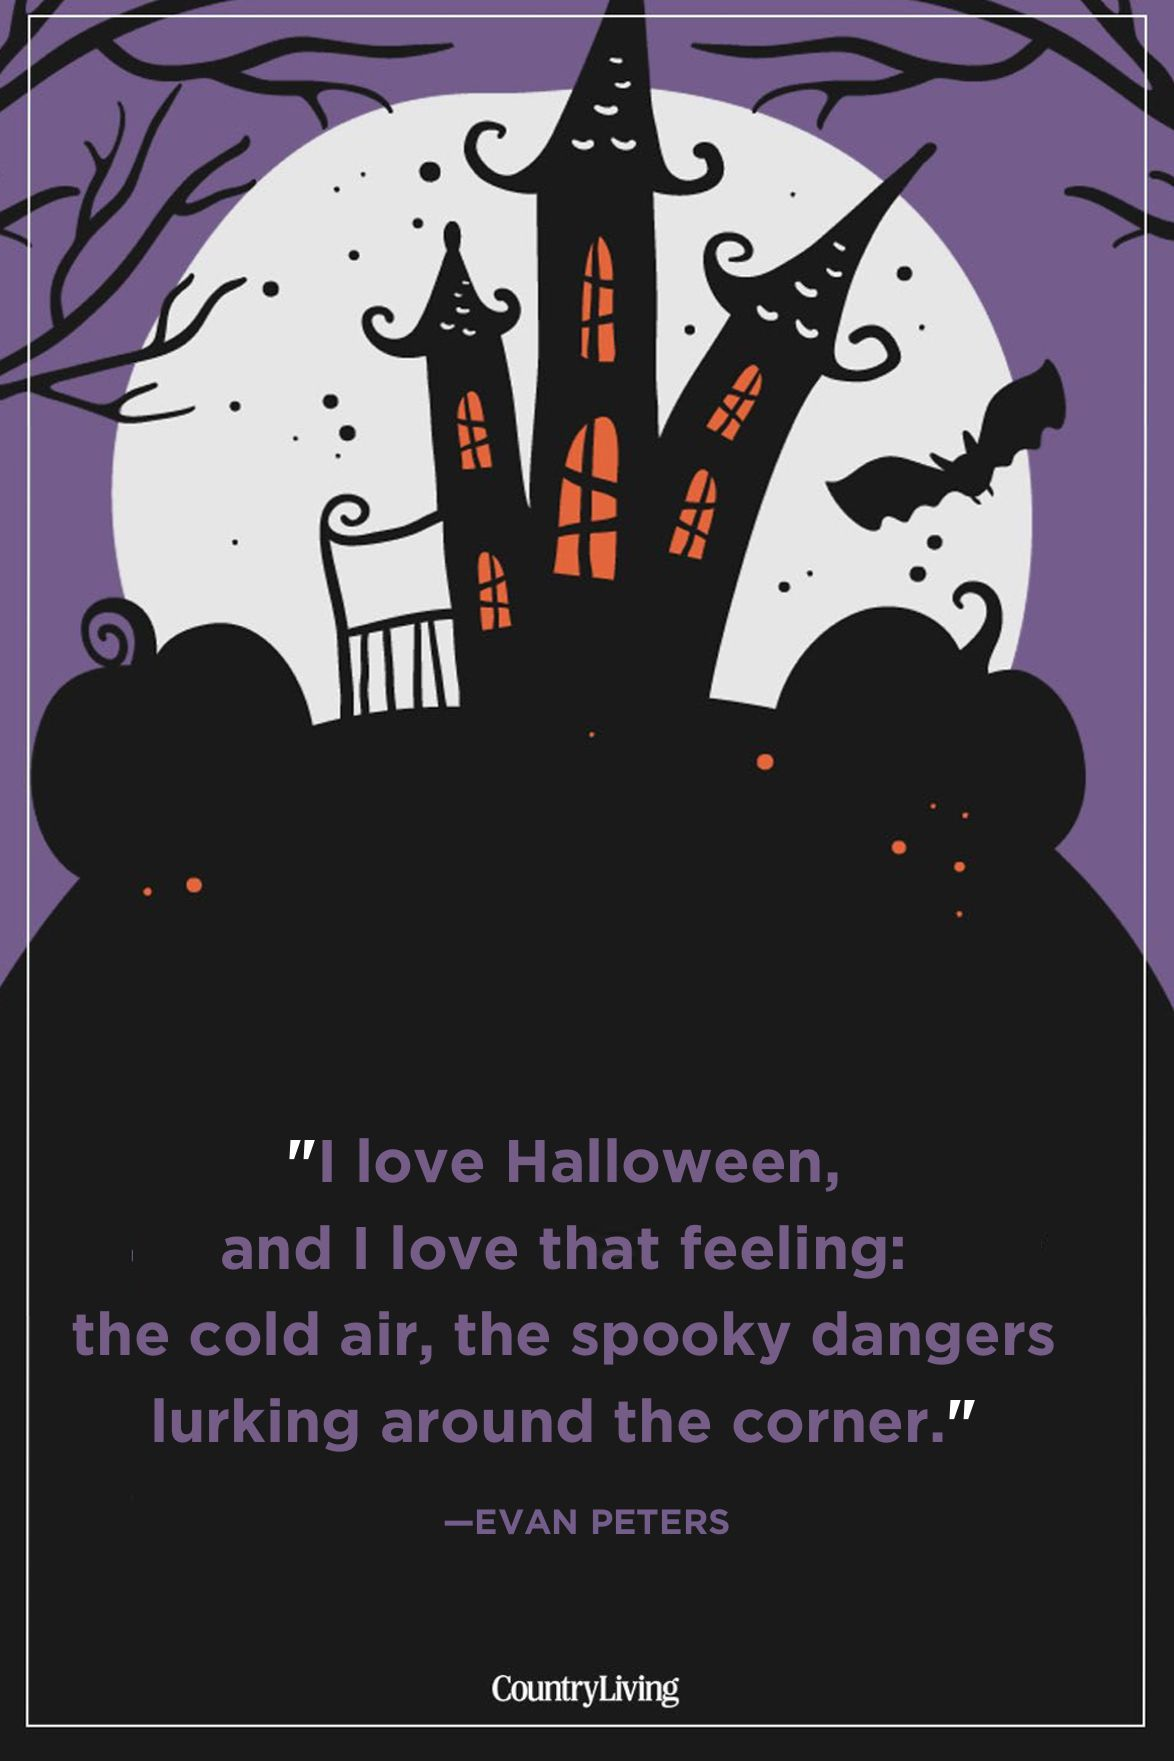 40 Happy Halloween Quotes - Best Spooky Halloween Quotes and